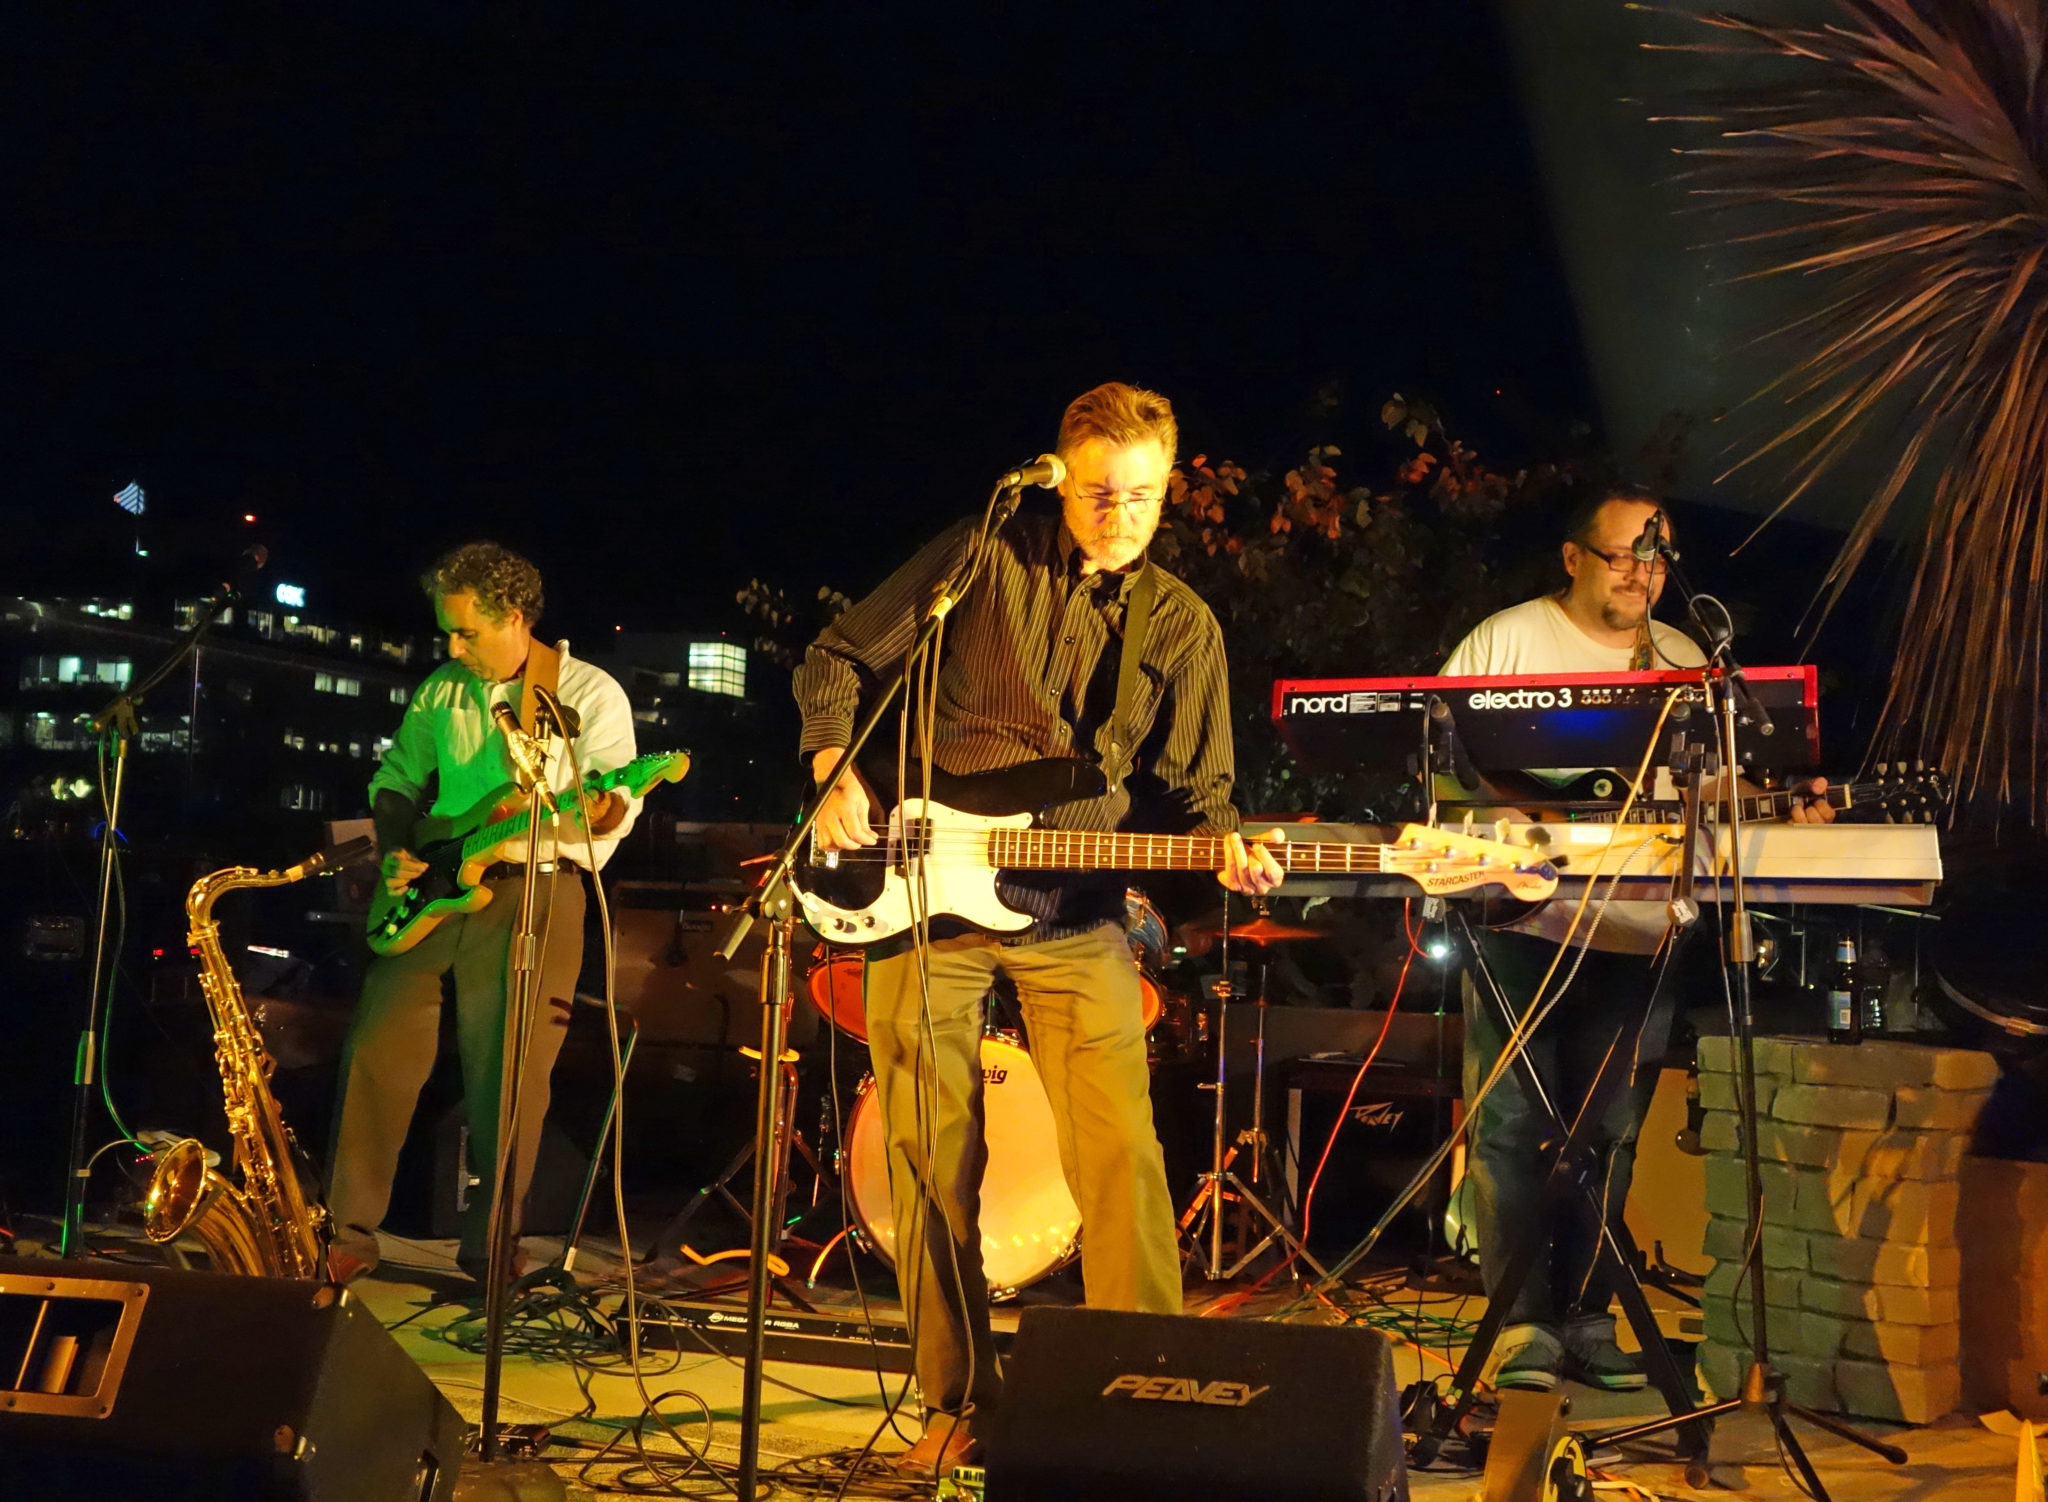 The Innocent Bystanders, a cover band, play live music in San Diego